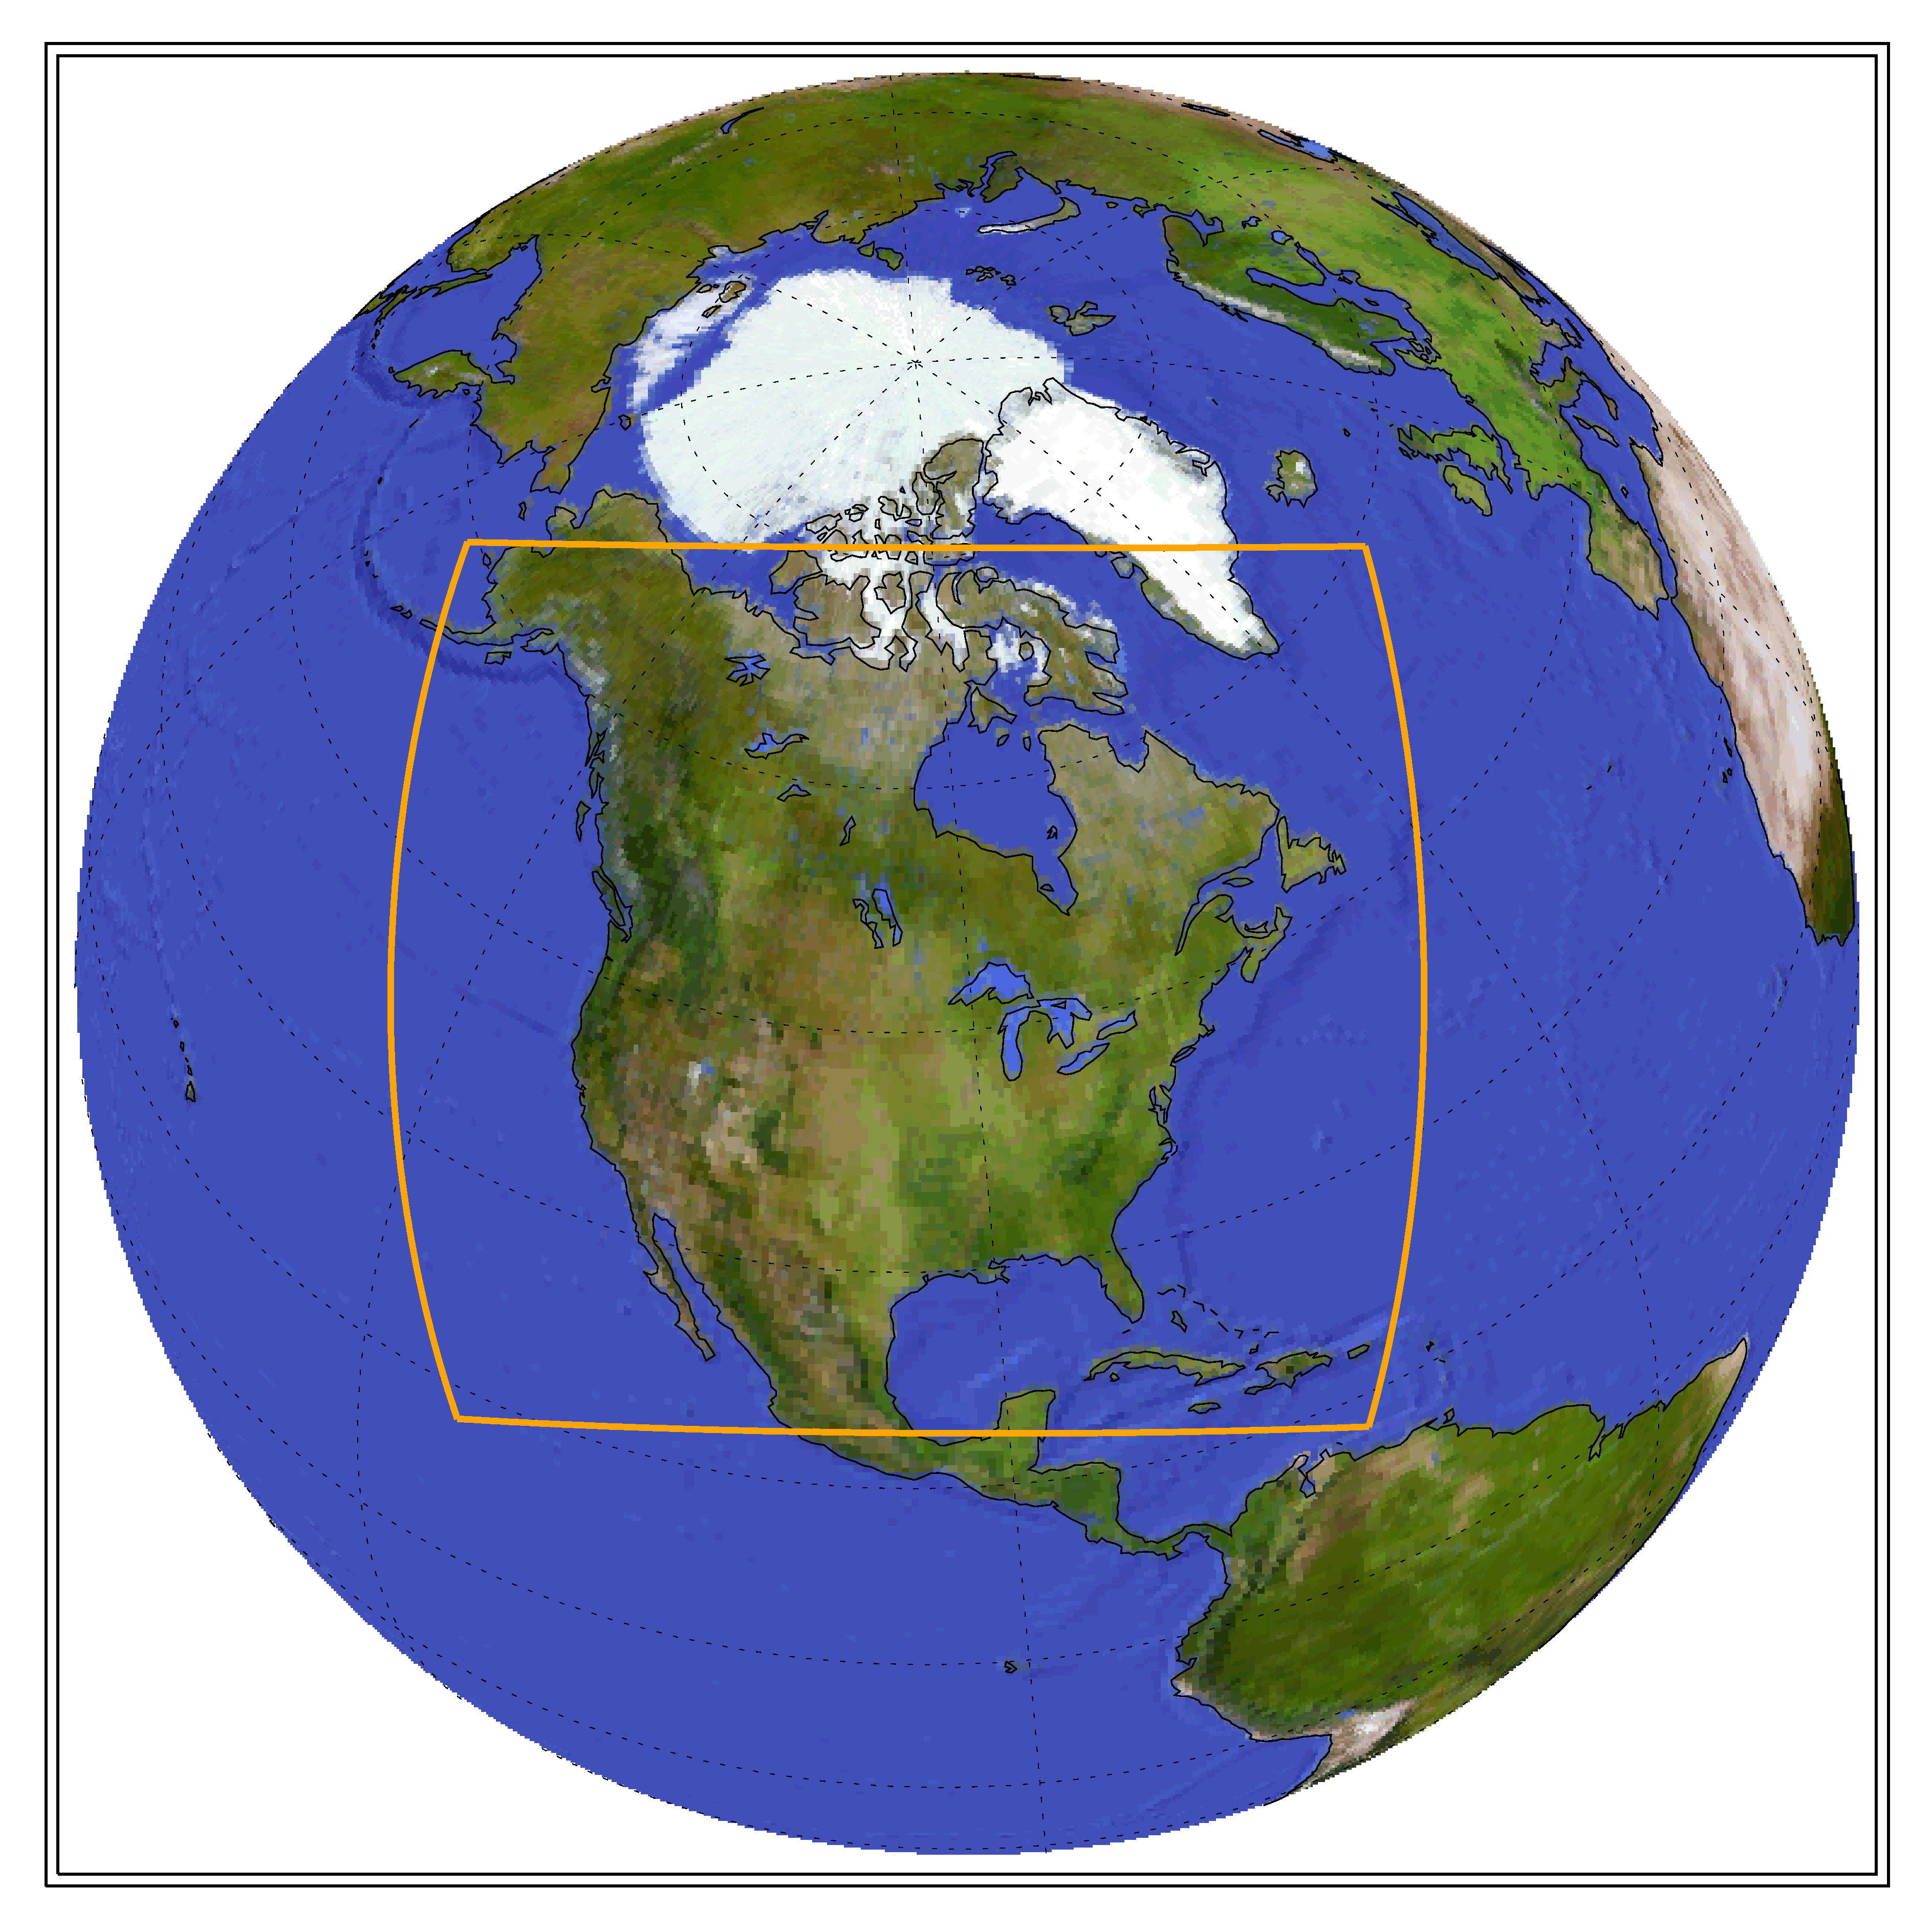 Globe showing the CORDEX domain of North America